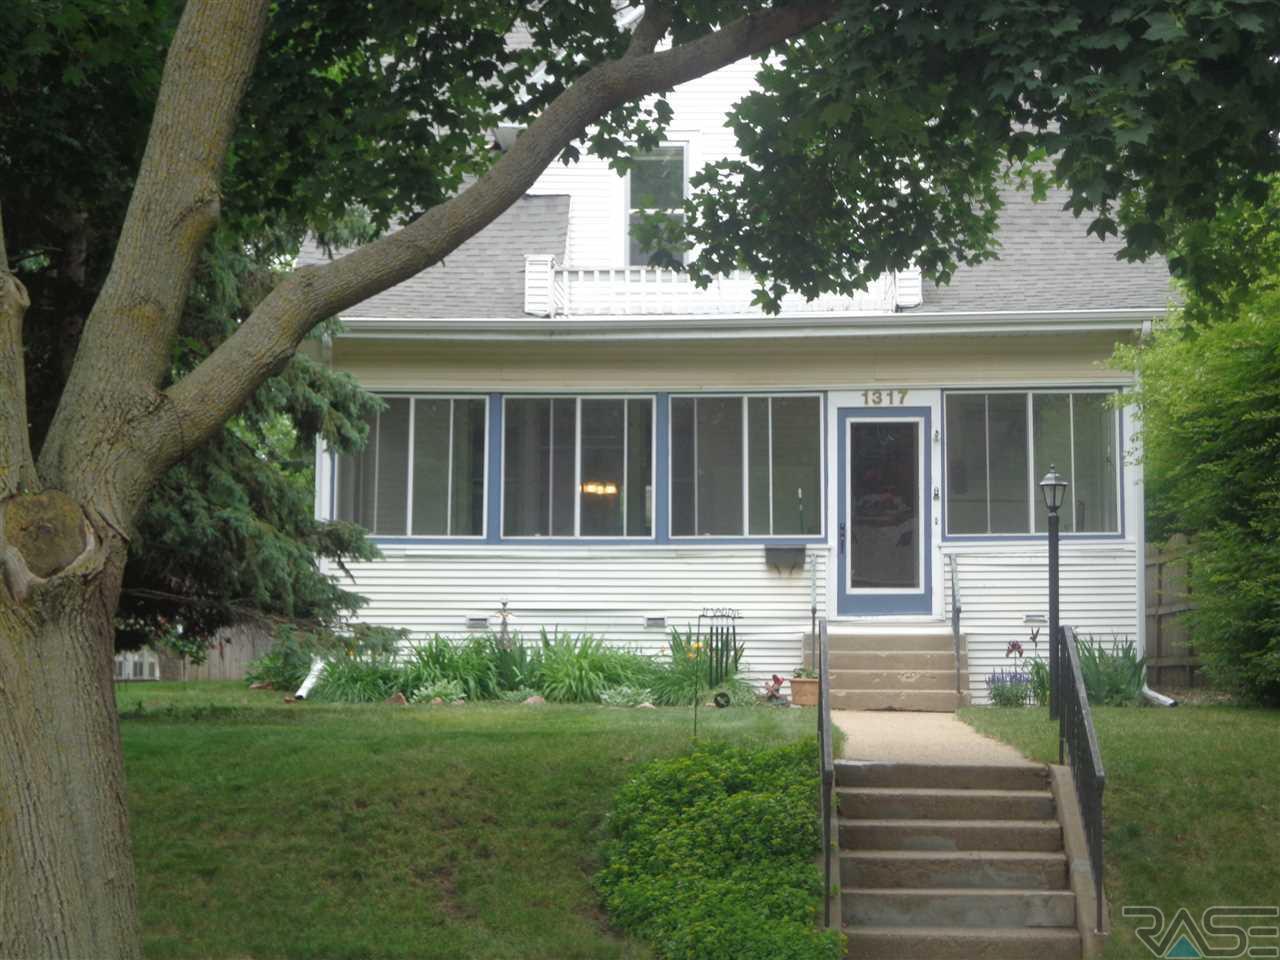 1317 S Main Ave, Sioux Falls, SD 57105